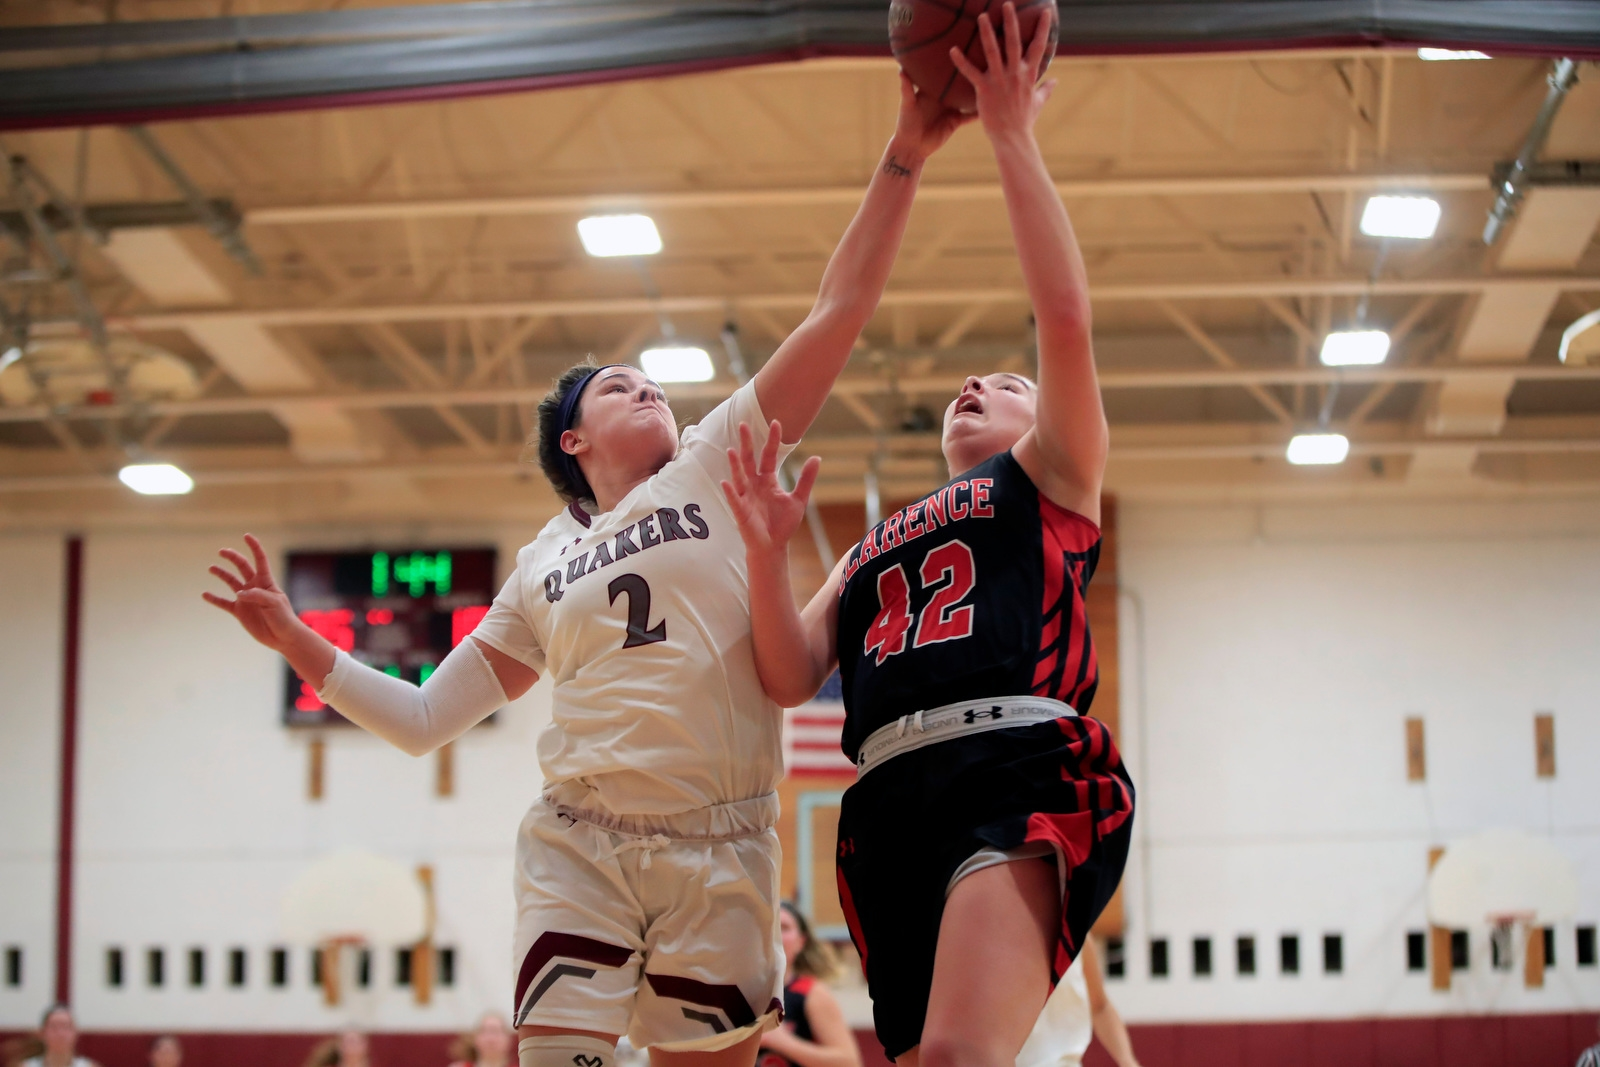 Clarence forward Theresa Bienko has her shot blocked by Orchard Park's Danielle Hore  during first half action at Orchard Park High School on Thursday, Jan. 25, 2018.